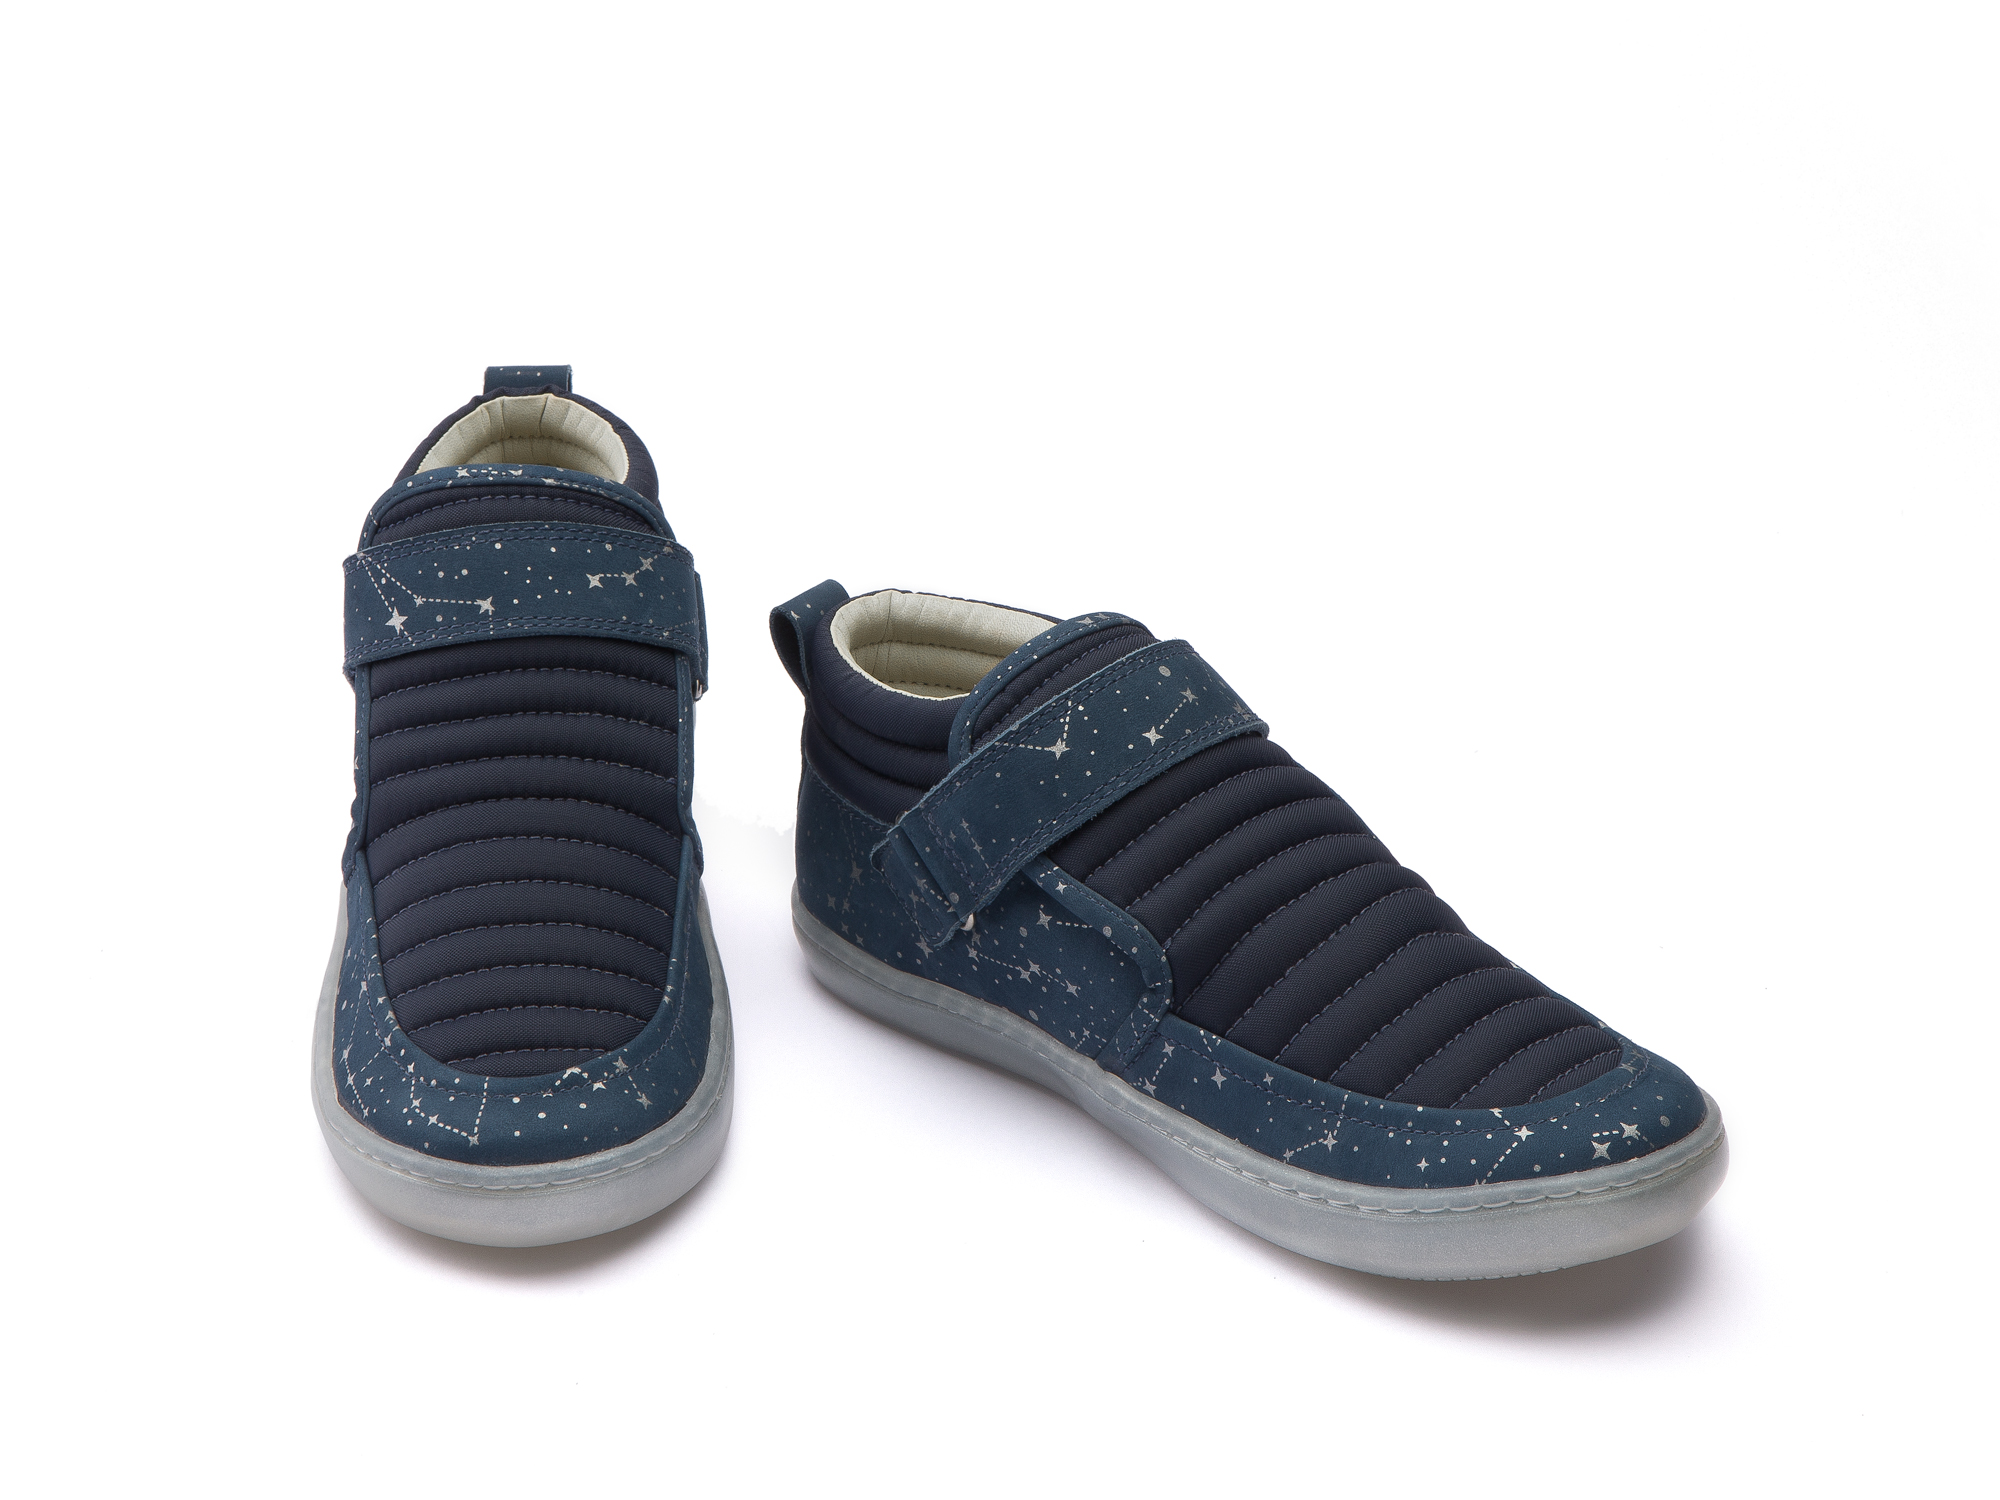 Bota Spacesuit Navy Nylon/ Blue Space Junior 4 à 8 anos - 2